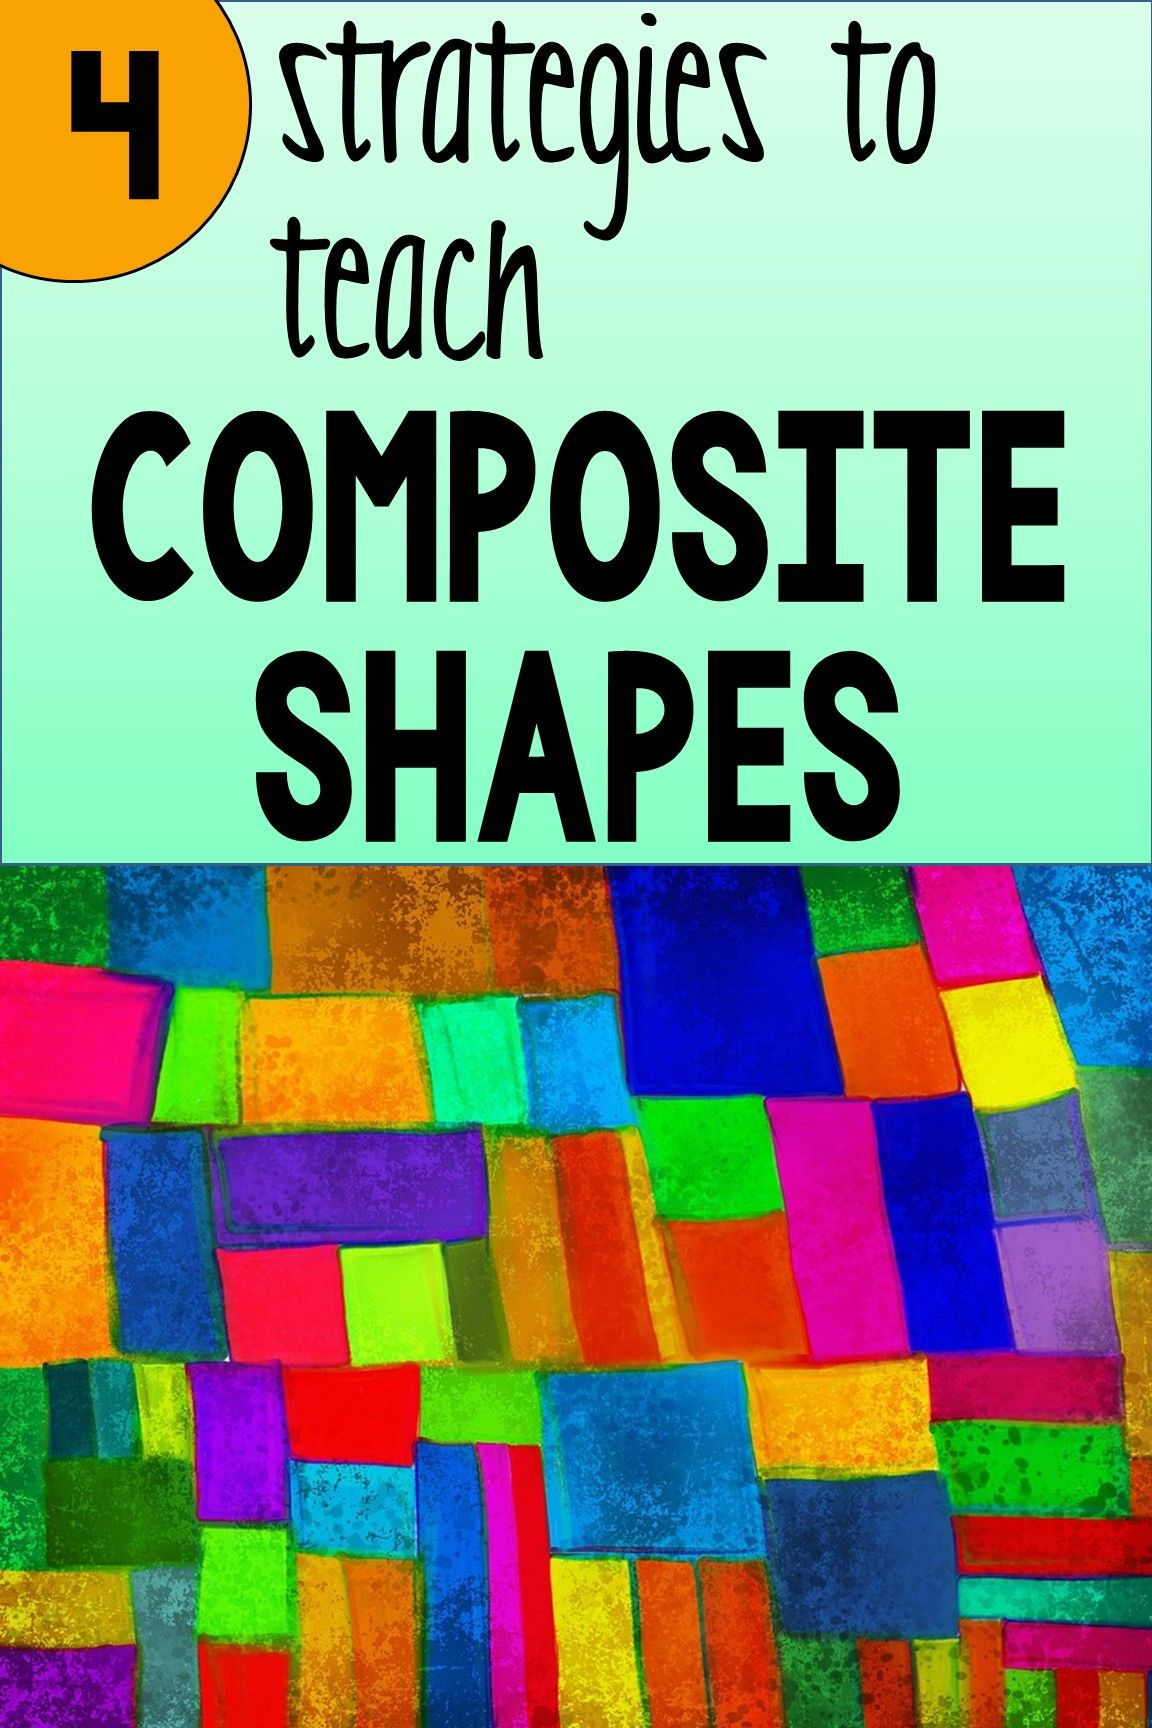 4 Strategies To Teach Composite Shapes In